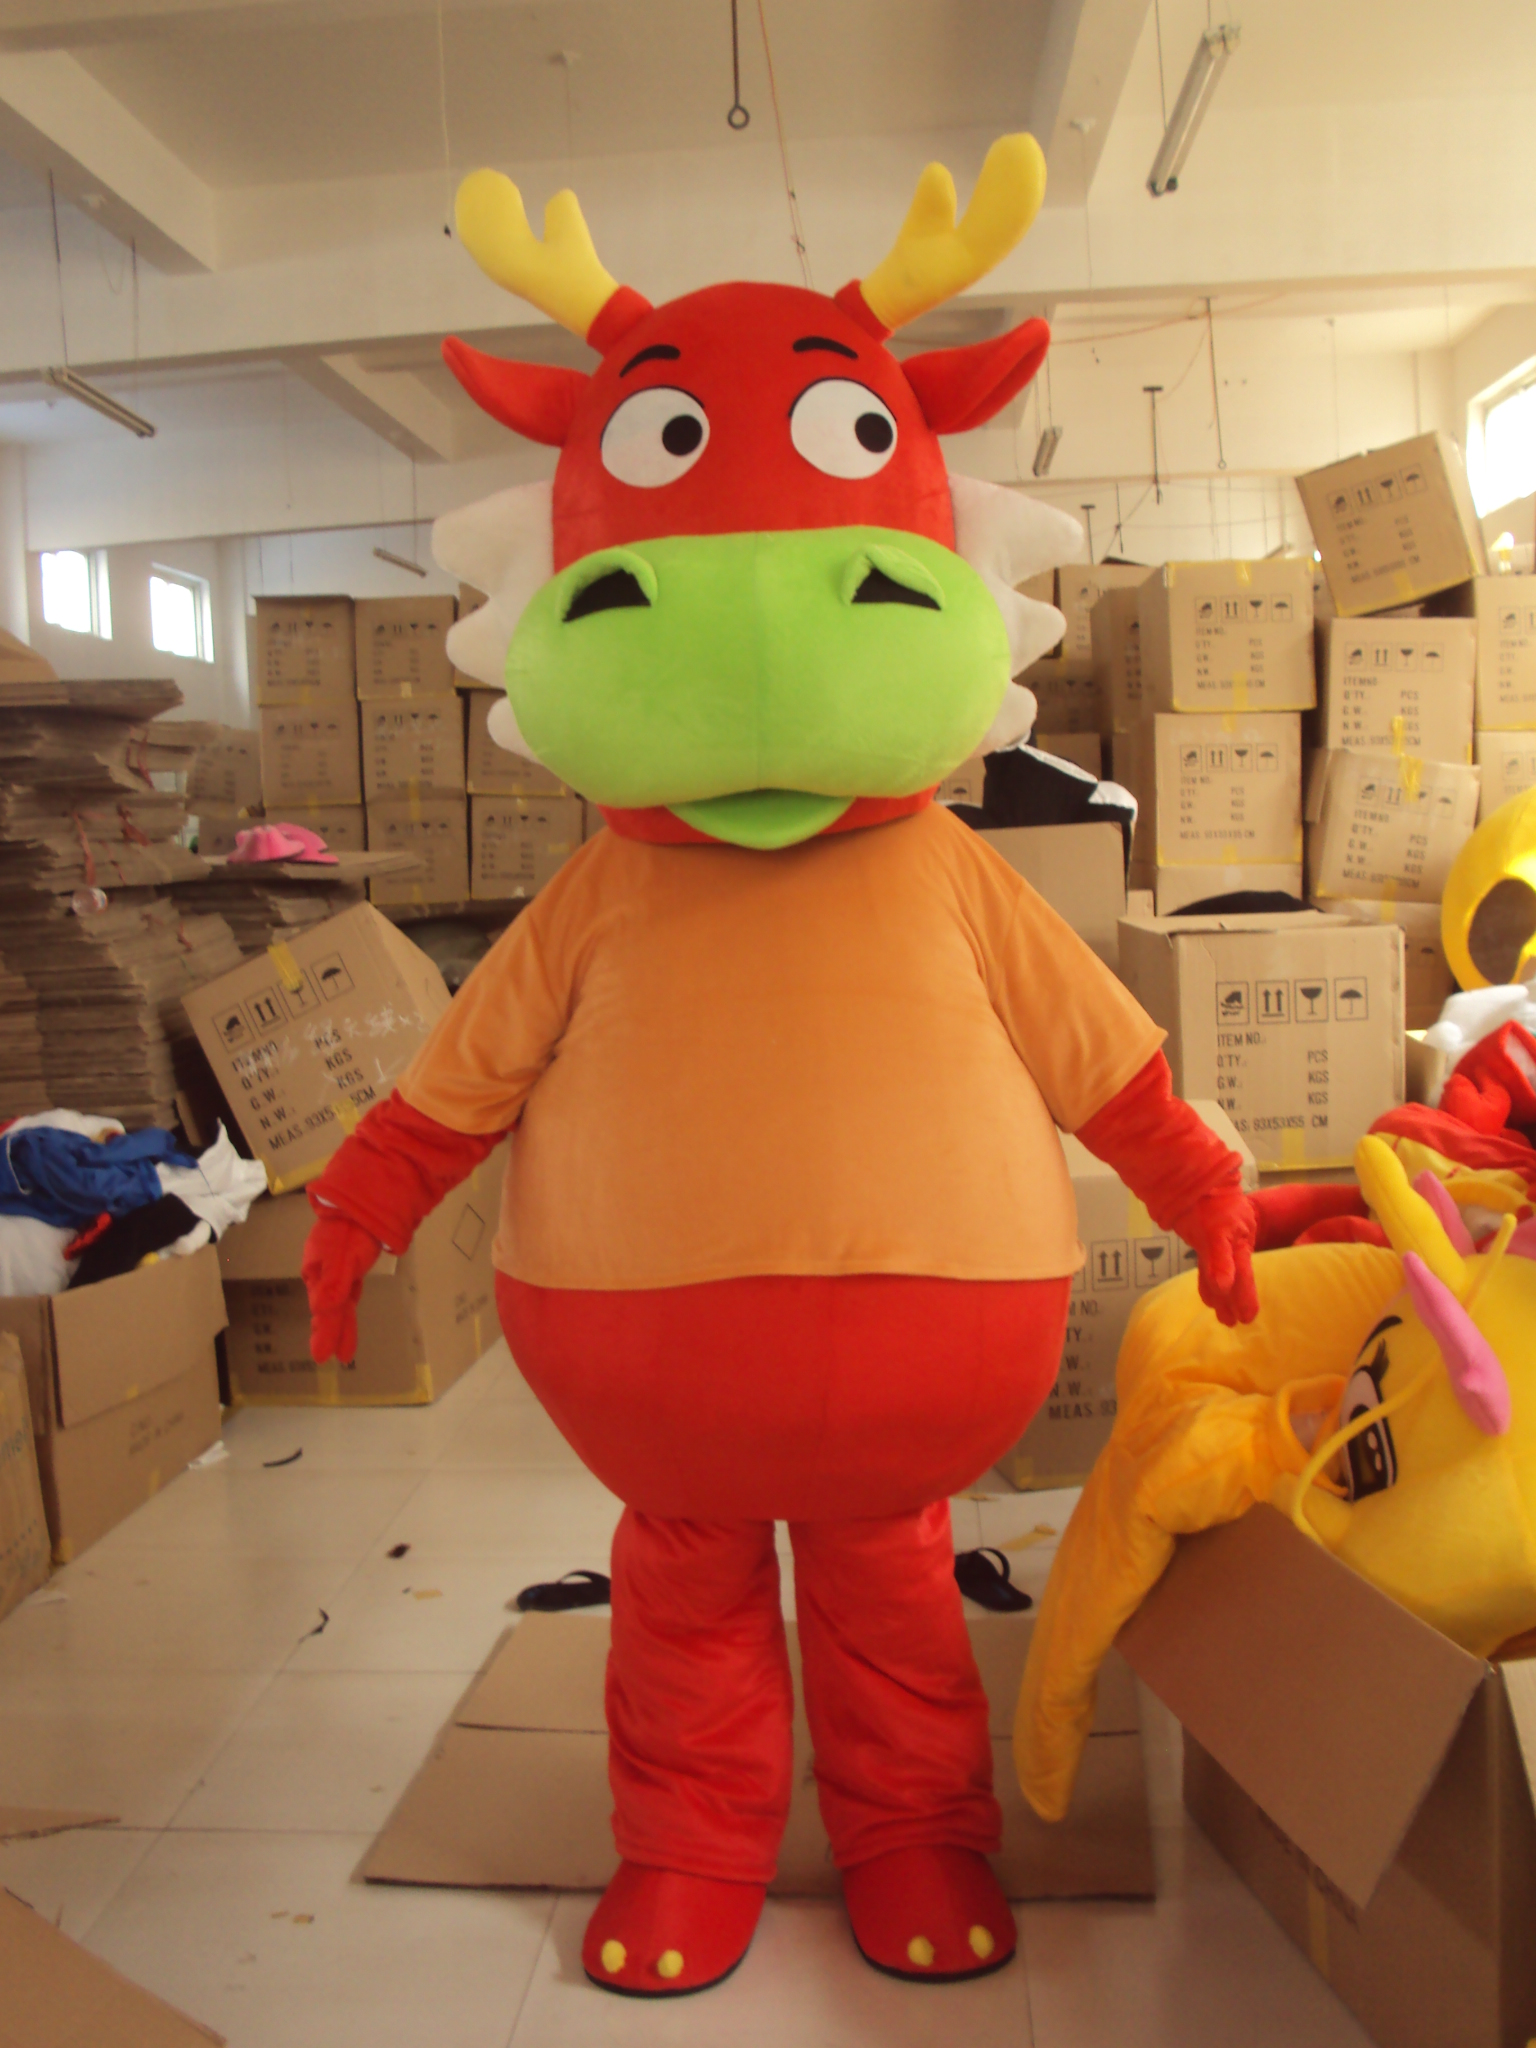 All Kinds Dragon Mascot Costume Hot Sell Mascotte Costume Pterosaur Little Green Dragon Red Yellow Dragon Cosplay Funny Mascots